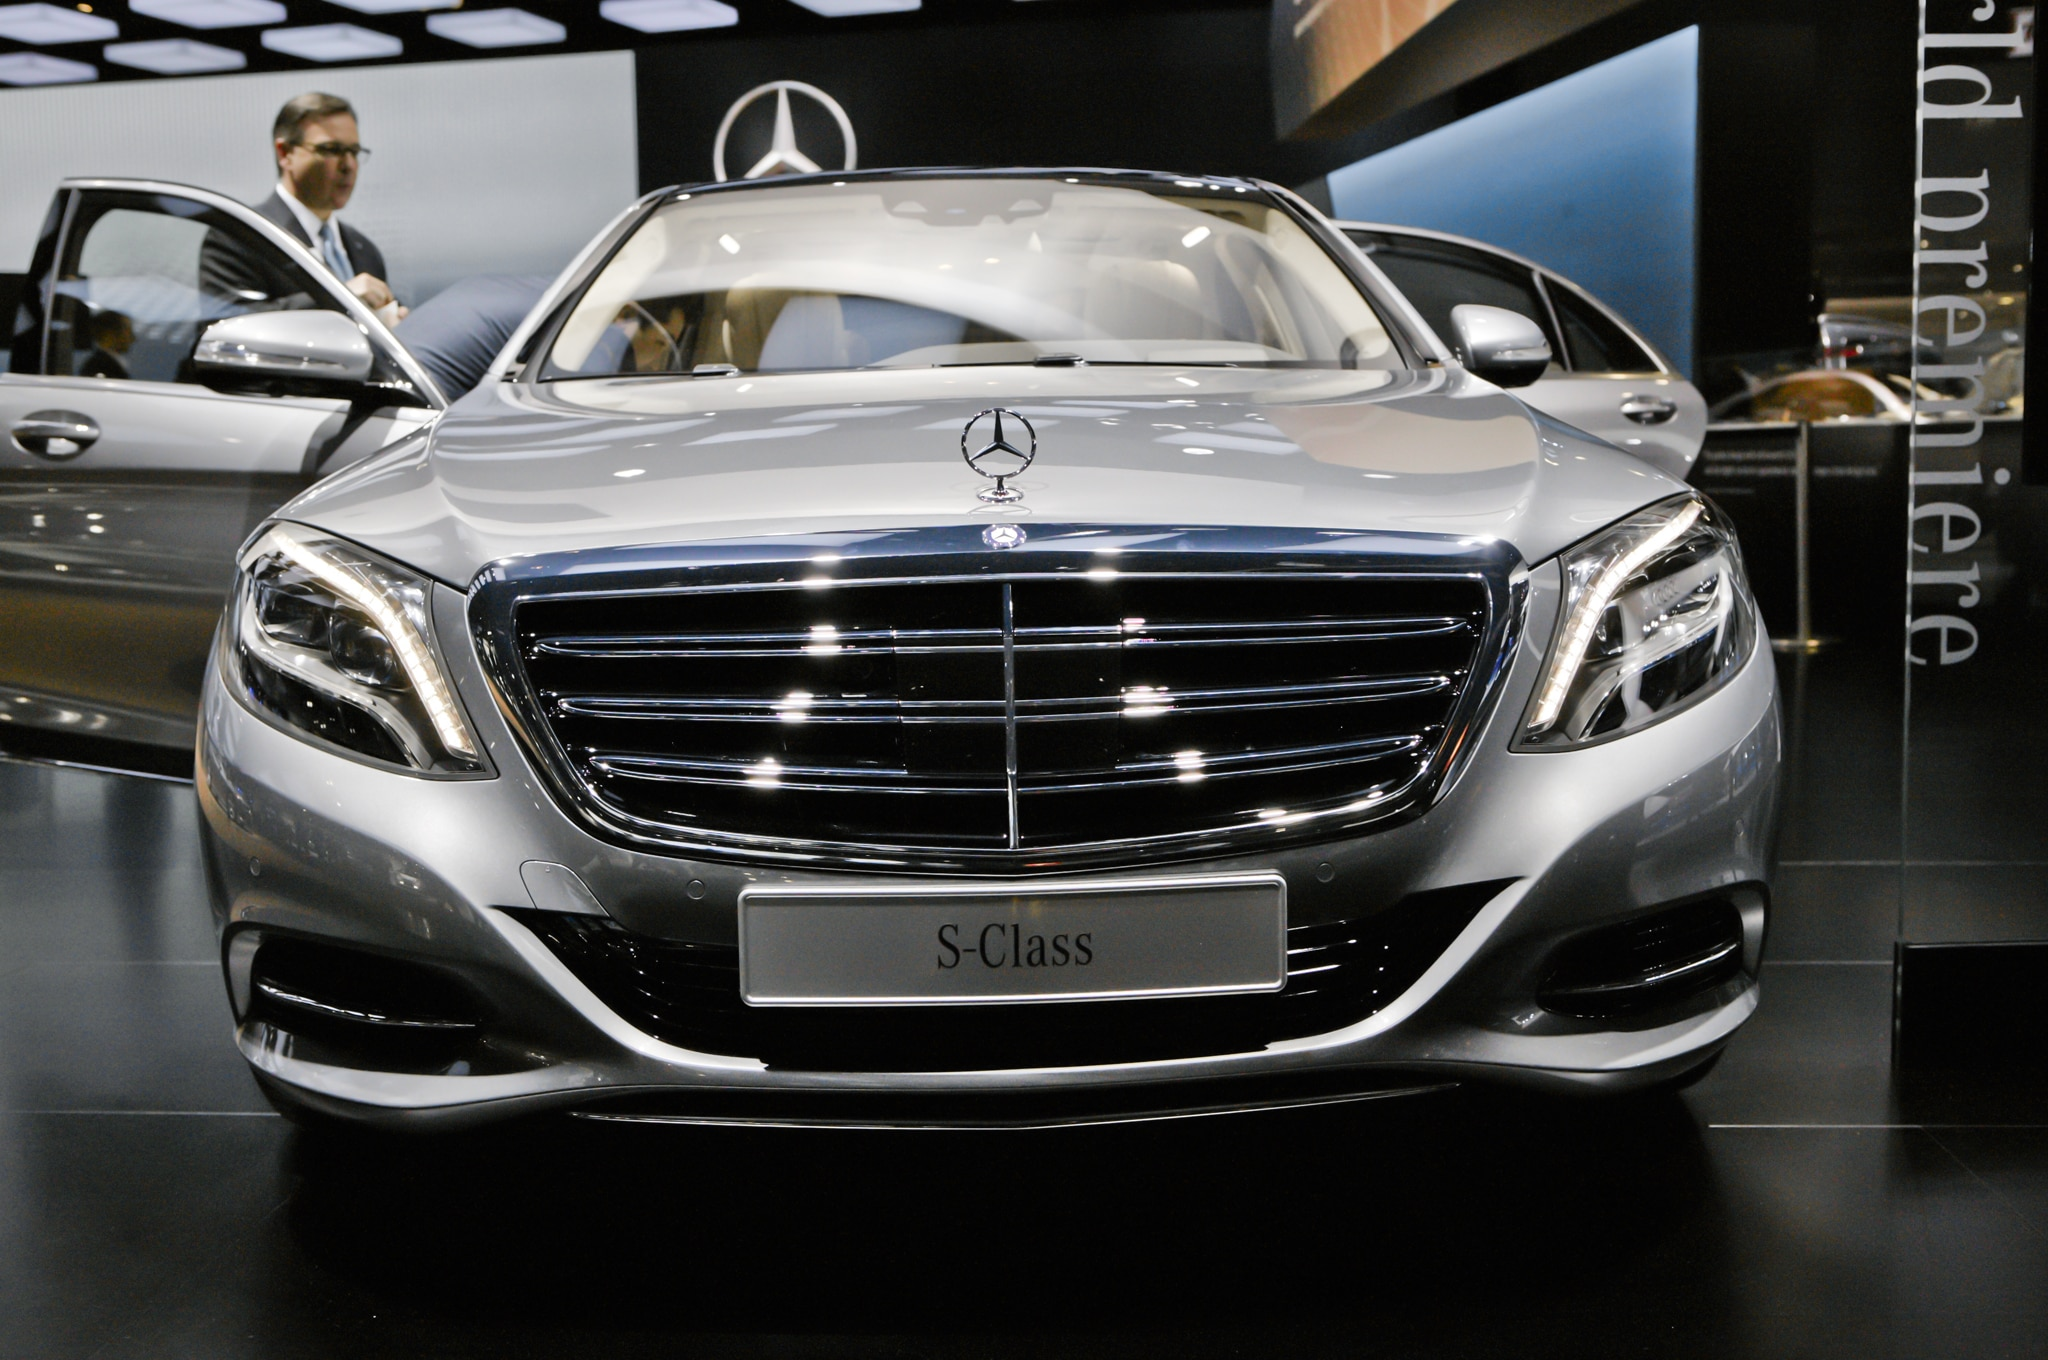 2015 mercedes benz s600 debuts at 2014 detroit auto show for S600 mercedes benz